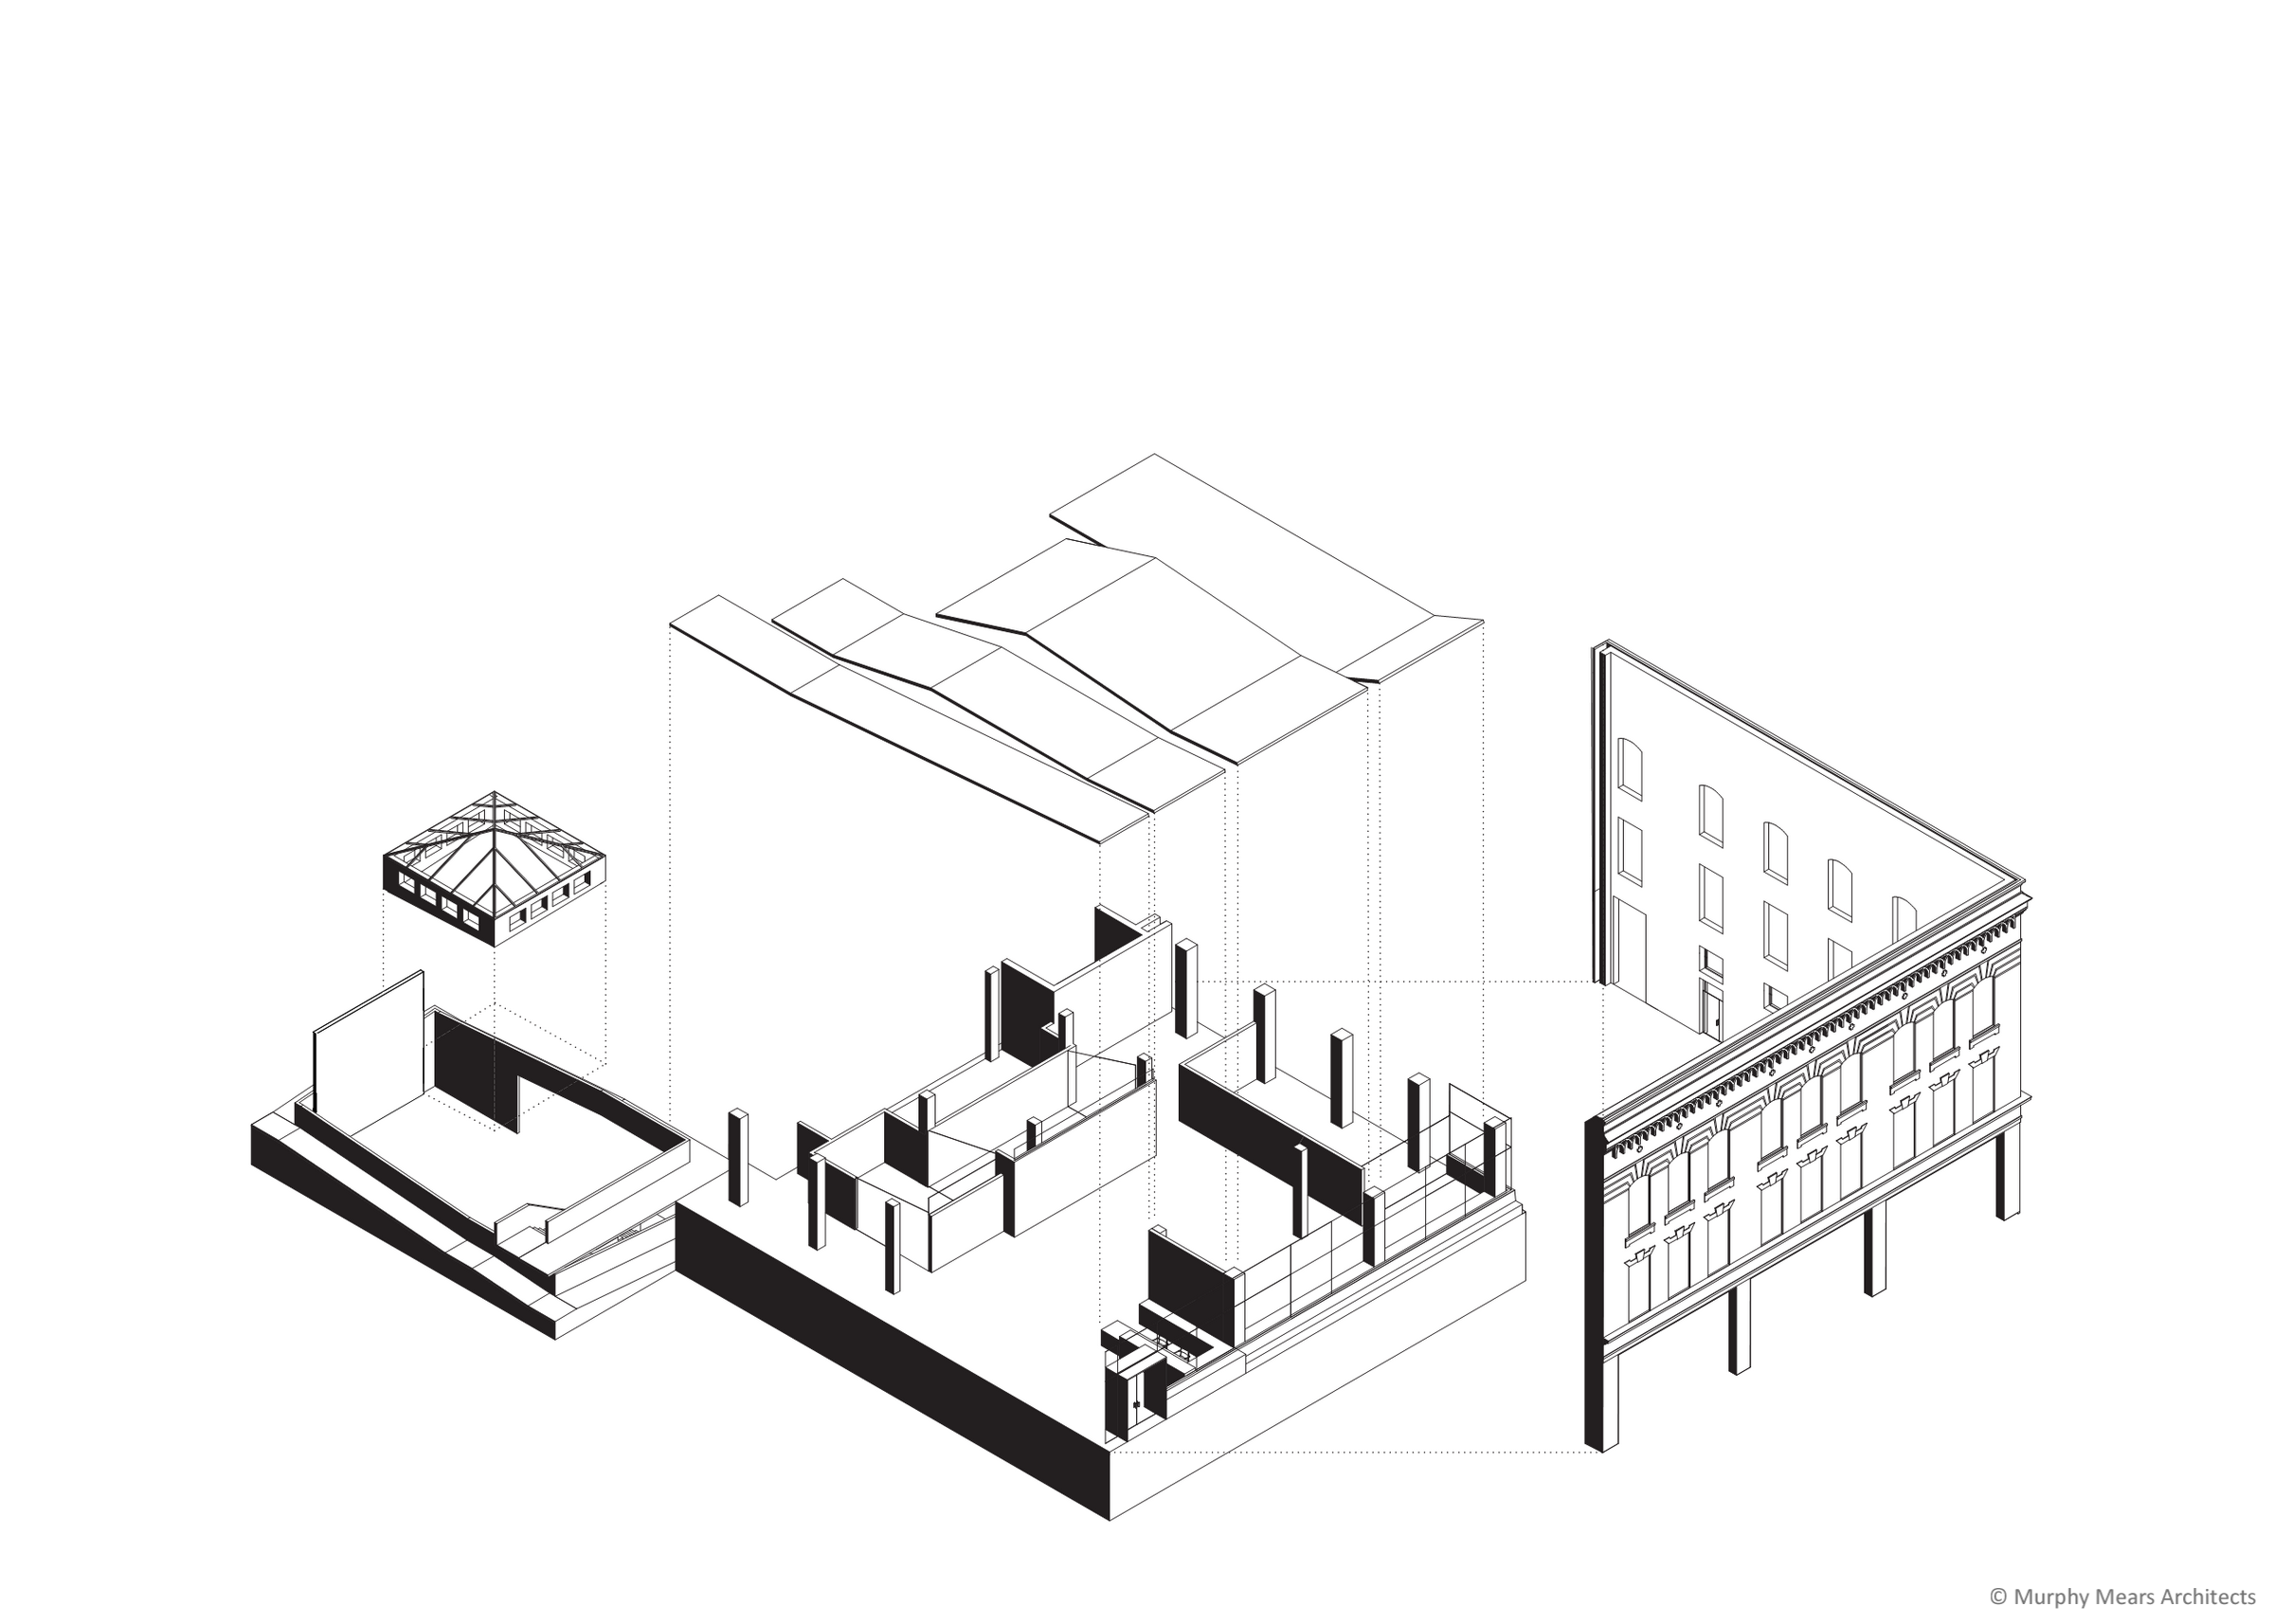 Architecture Center Houston - Competition Drawing - Axonometric Concept Diagram - Facade, Street-Front Space and Boiler Room.